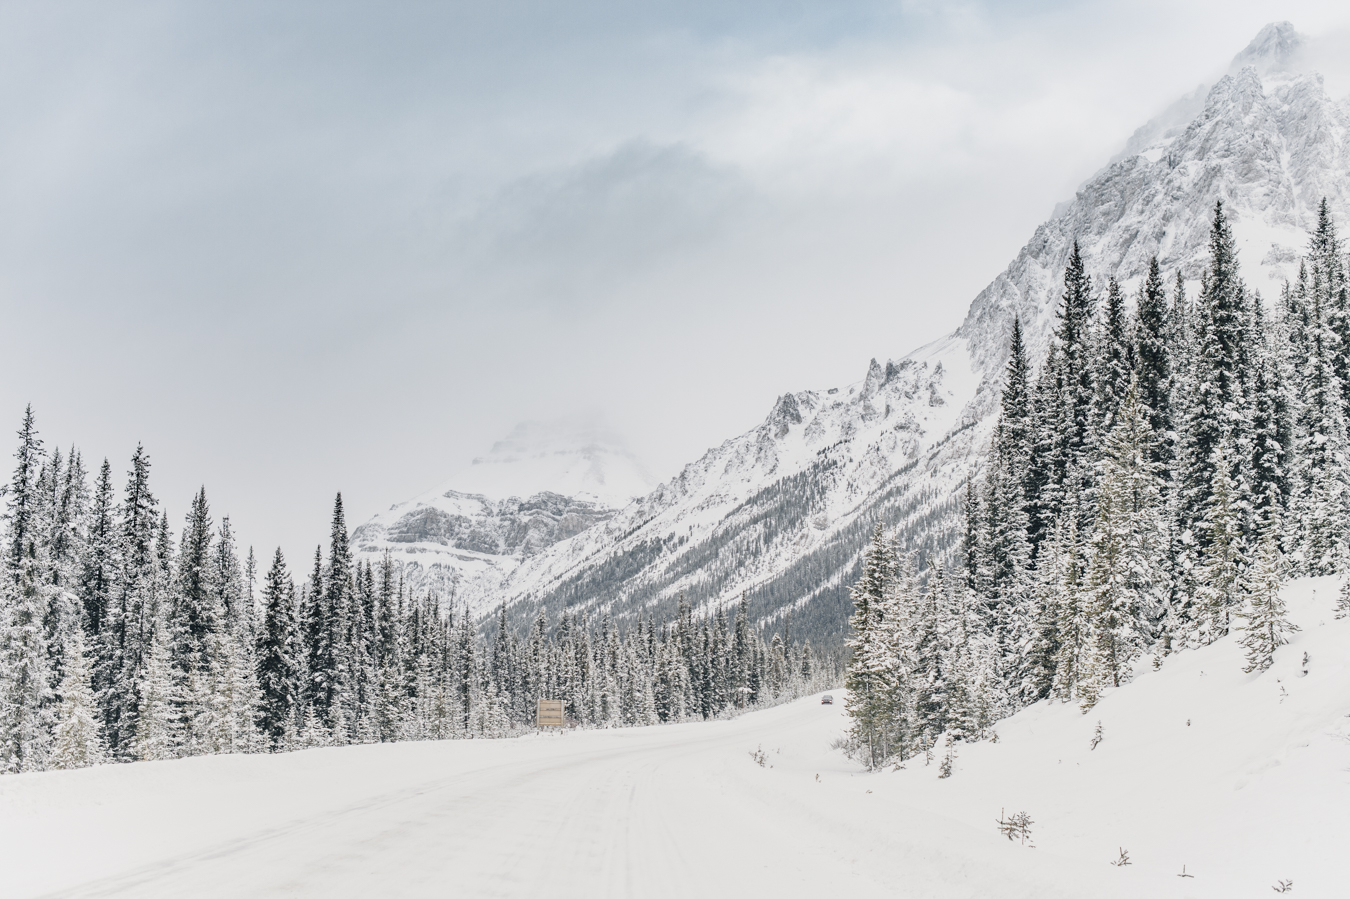 icefields-parkway-christian-frumolt-fotografie_web_small-1